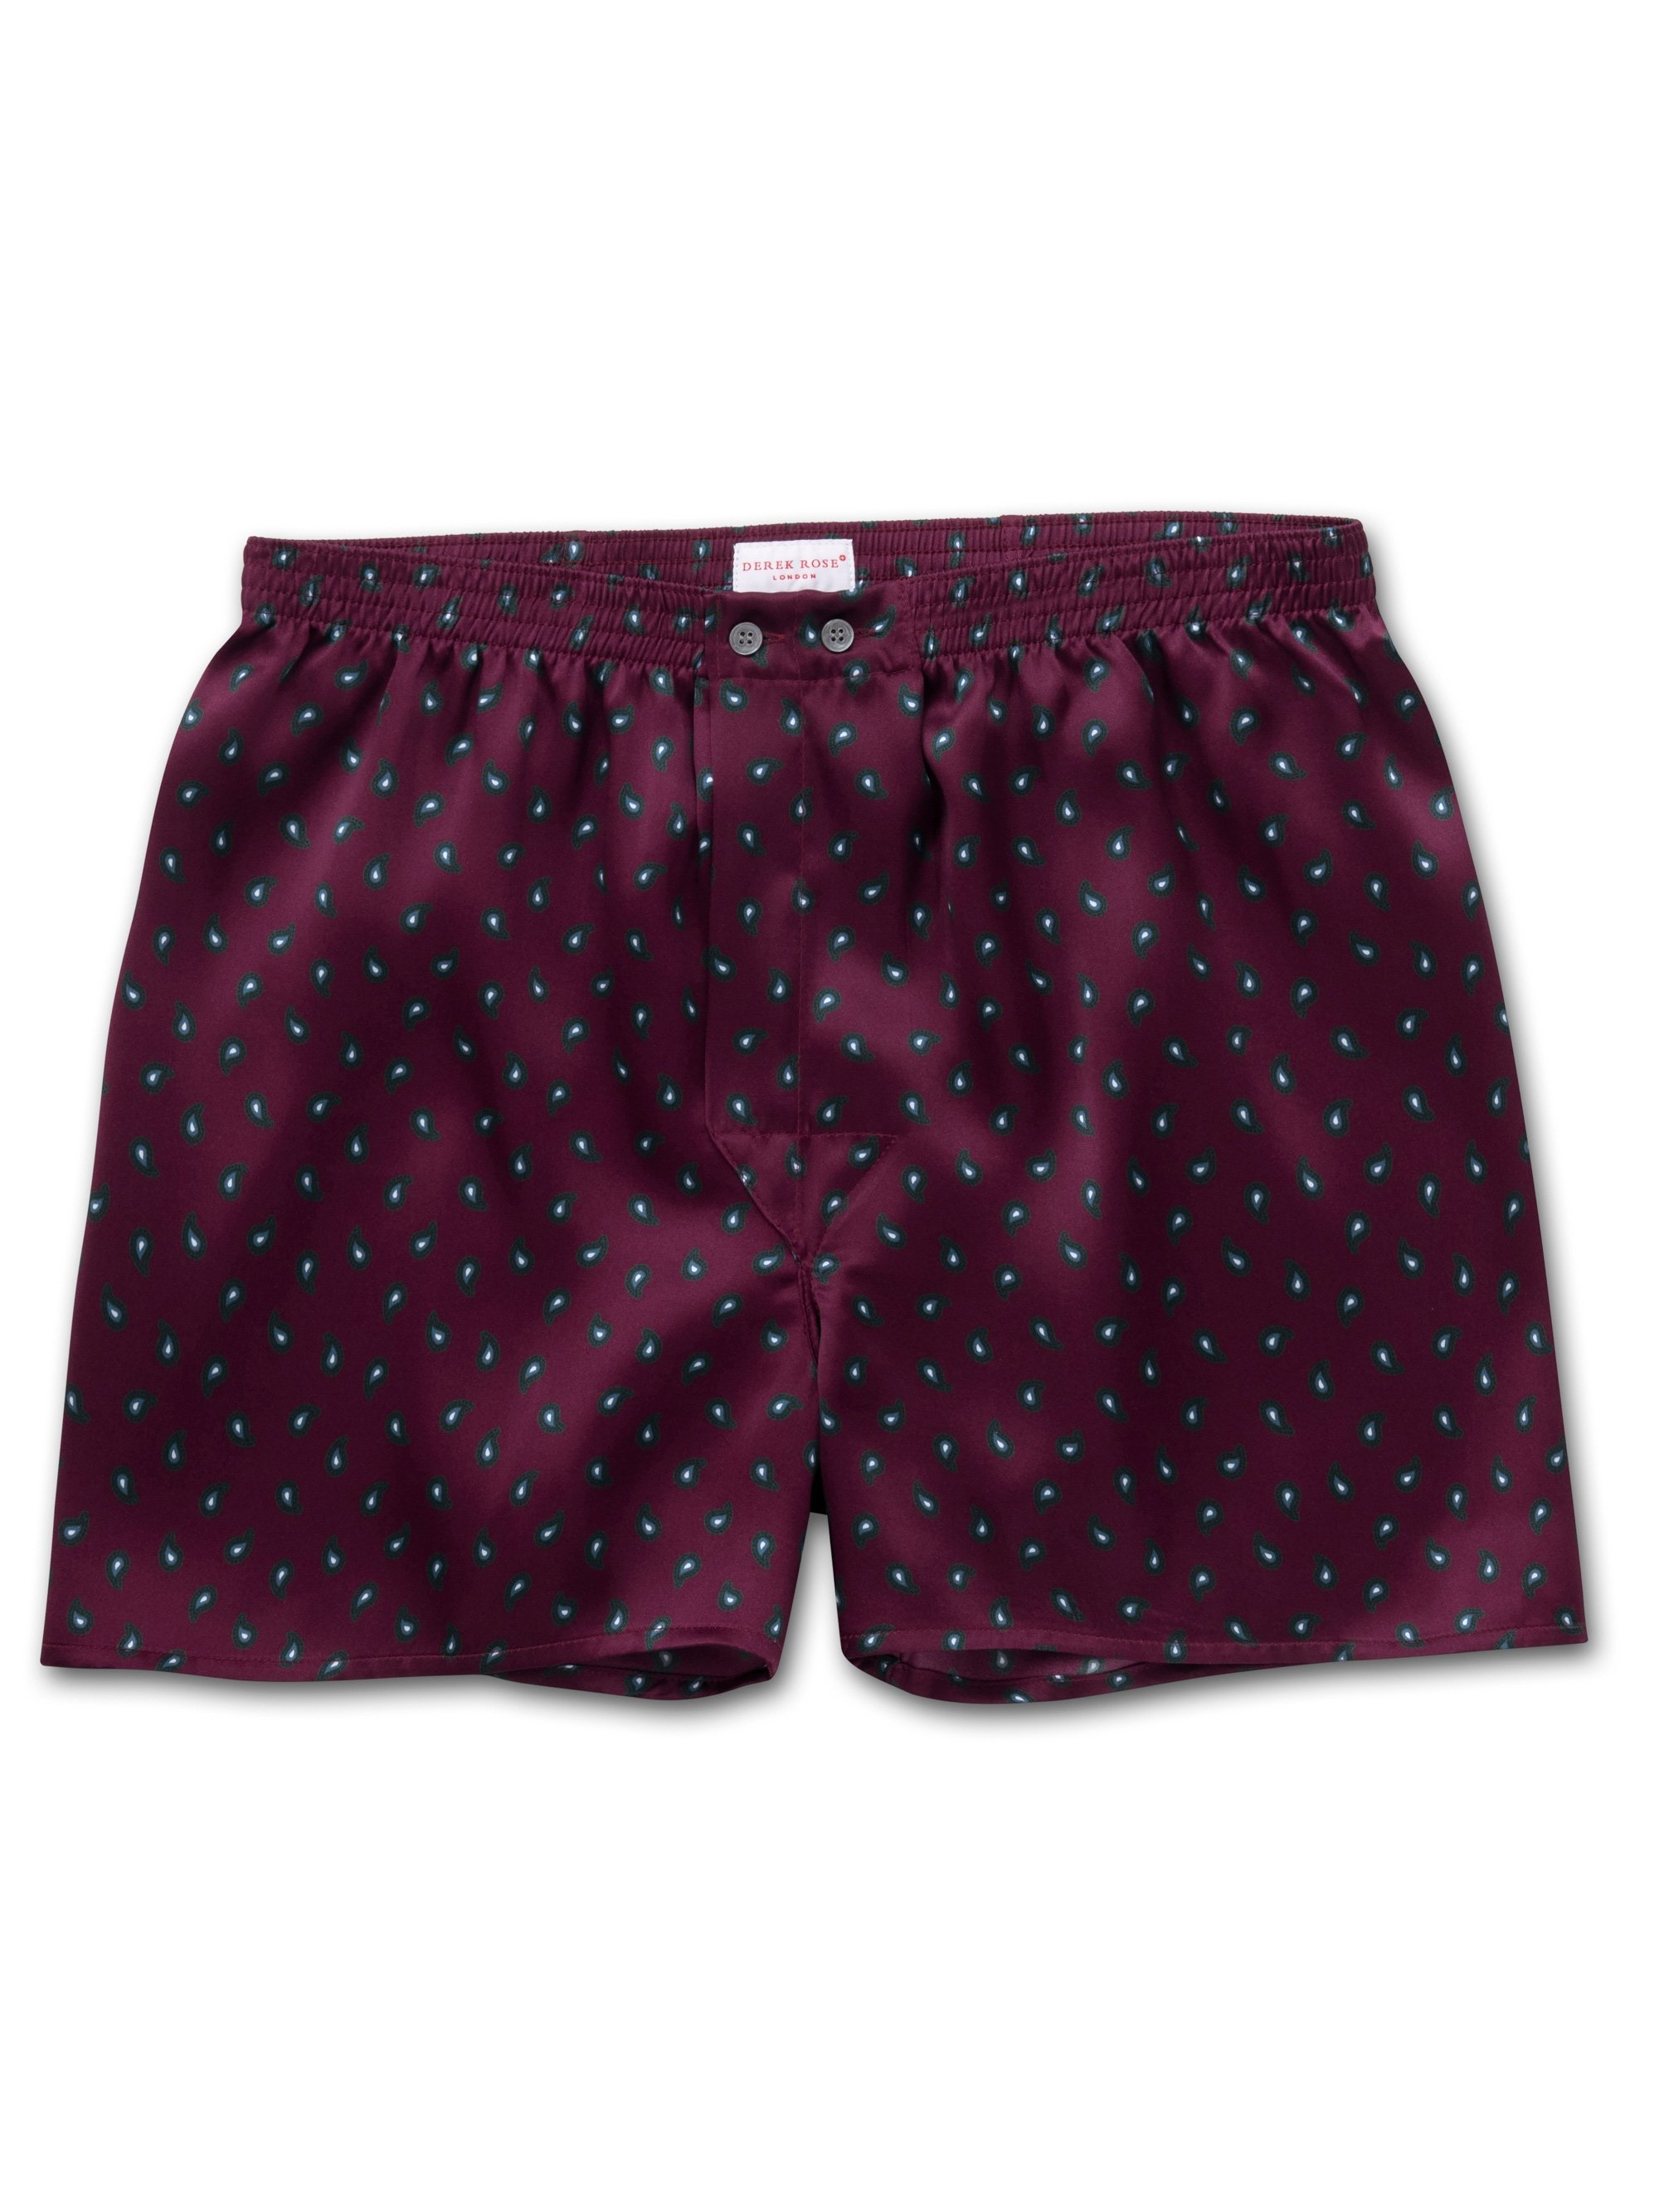 Men's Classic Fit Boxer Shorts Brindisi 57 Pure Silk Satin Burgundy